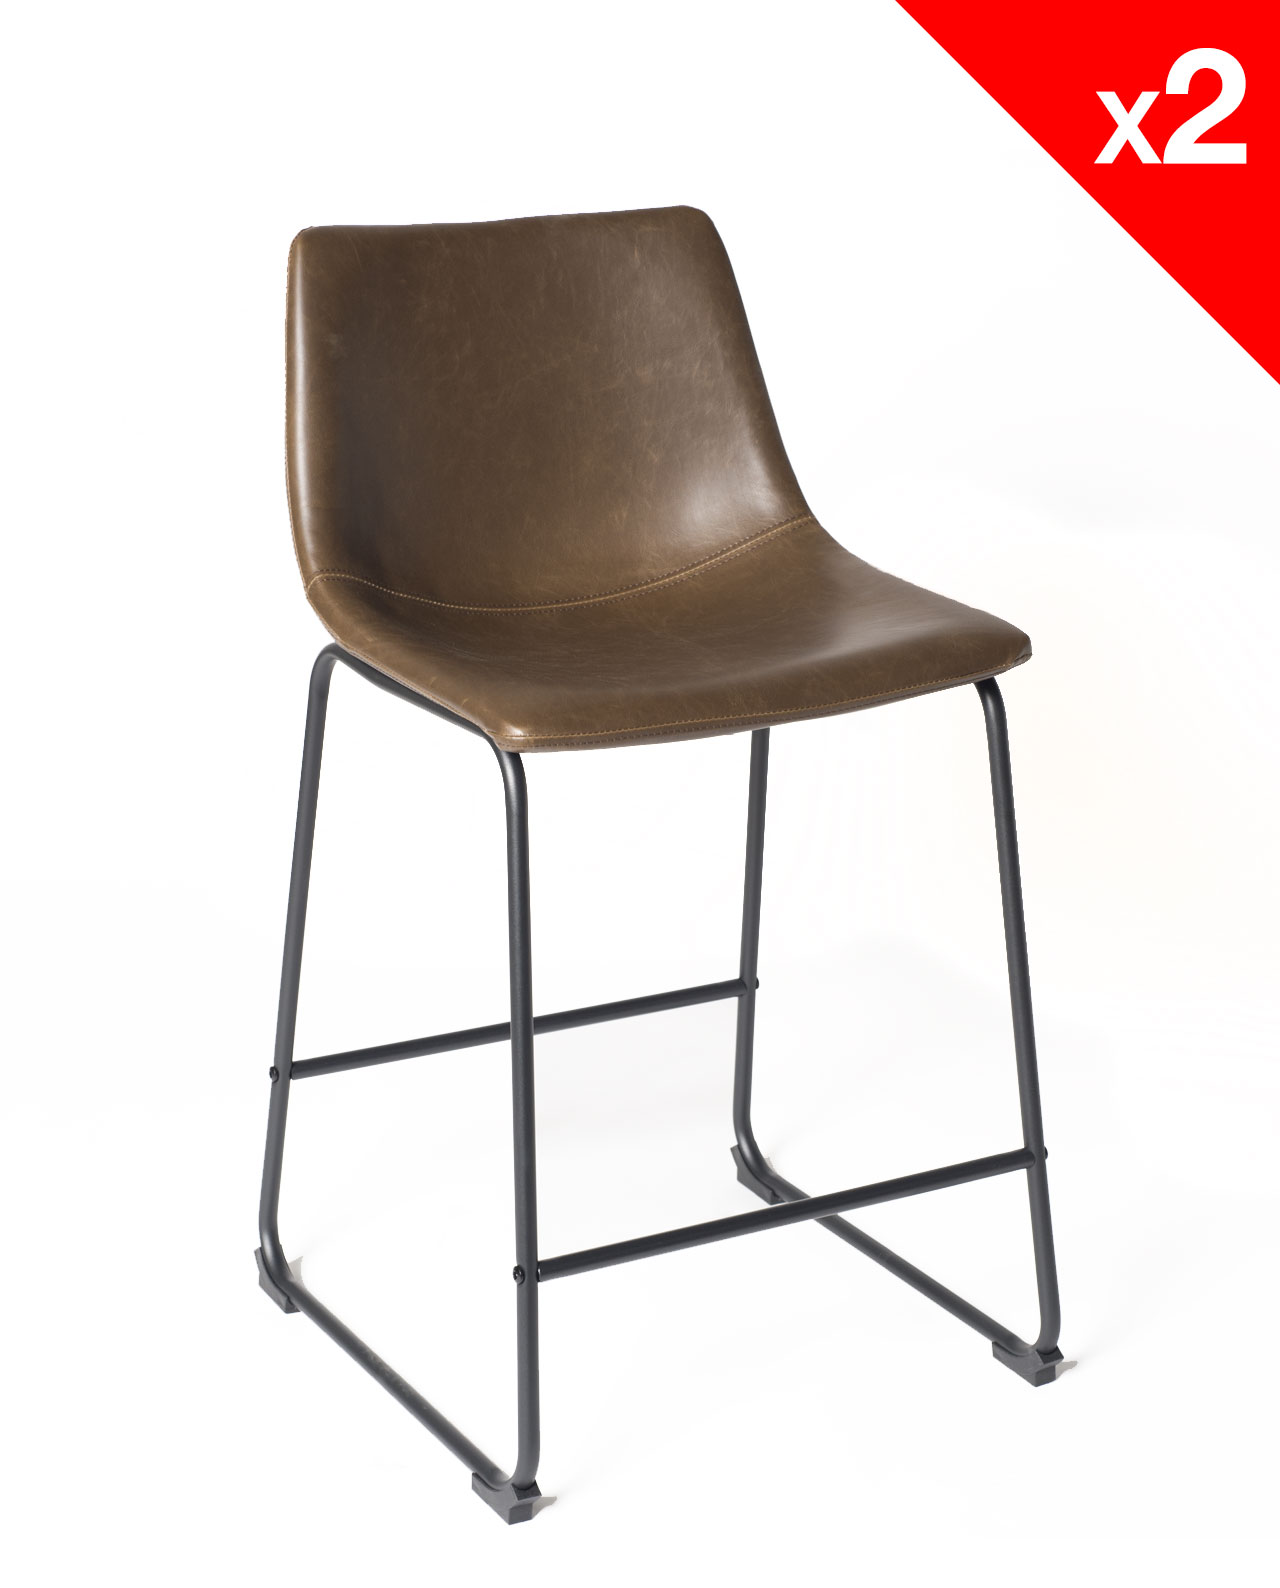 Chaises De Bar Vintage Industriel Lot De 2 Helio61 Kayelles Com